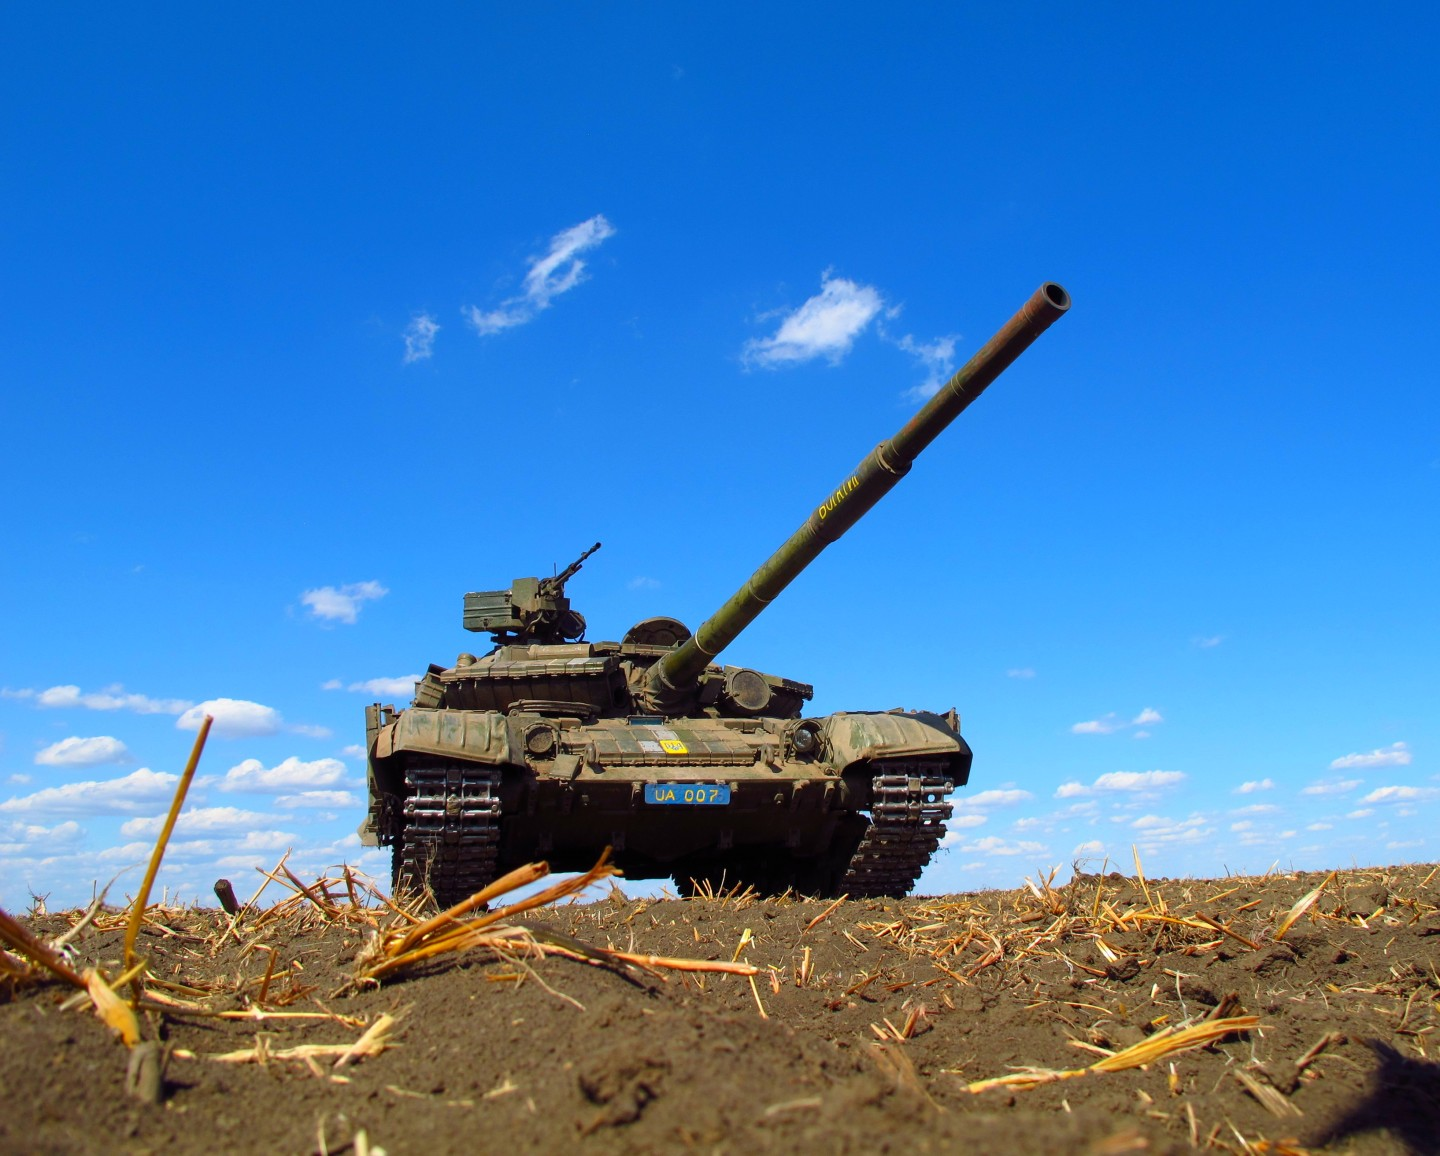 Ukrainian Land Forces Tank by military journalist Taras Gren MOD Ukraine